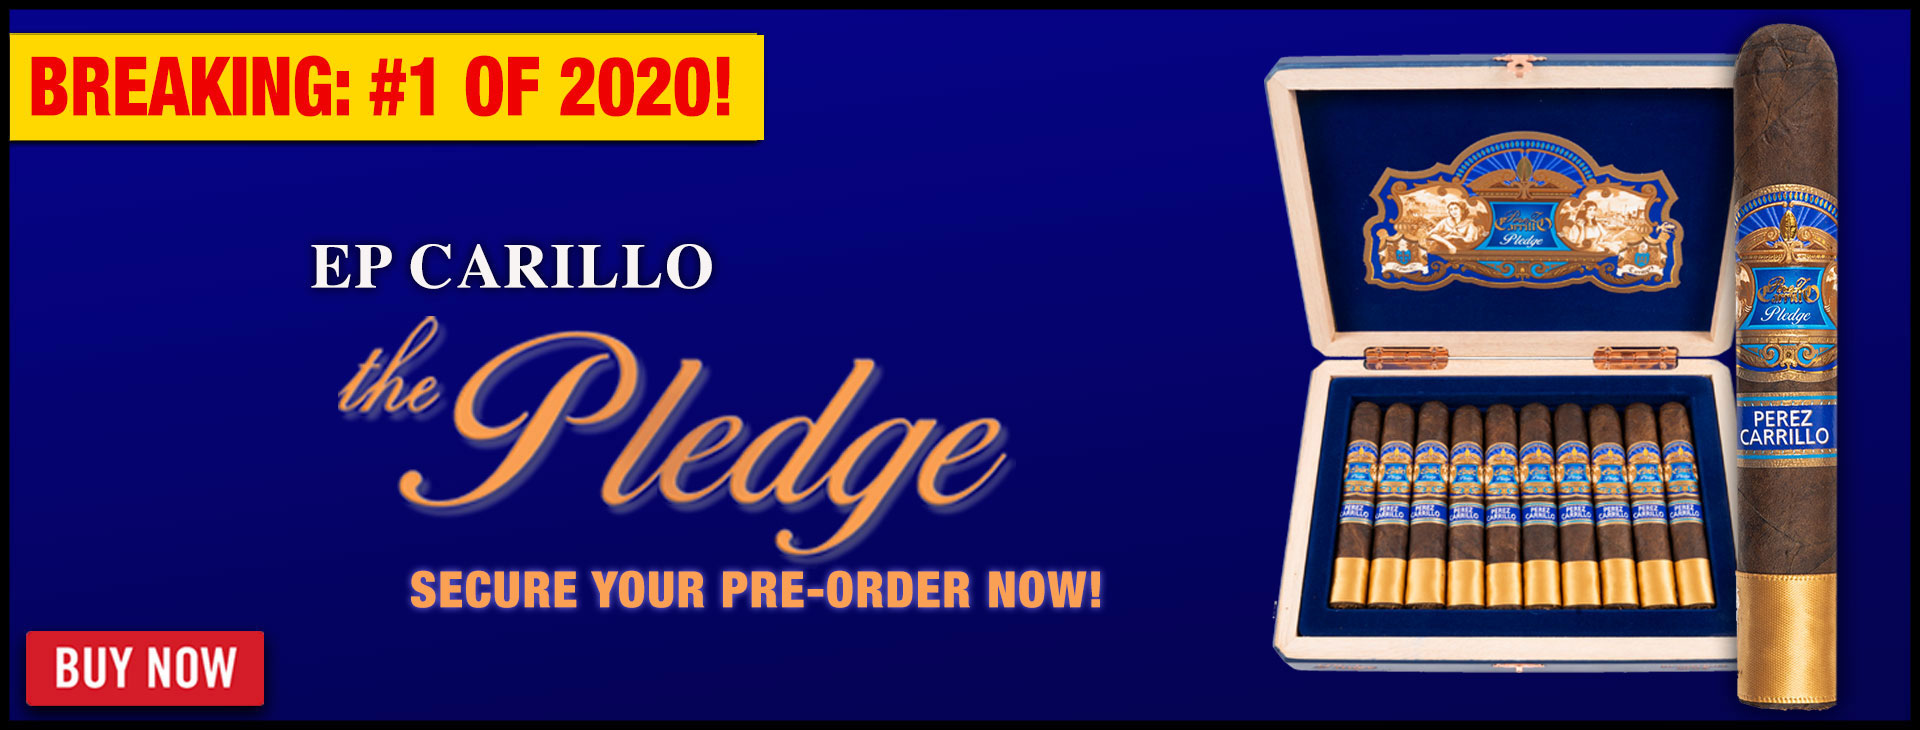 pledge-cigar-2021-banner.jpg